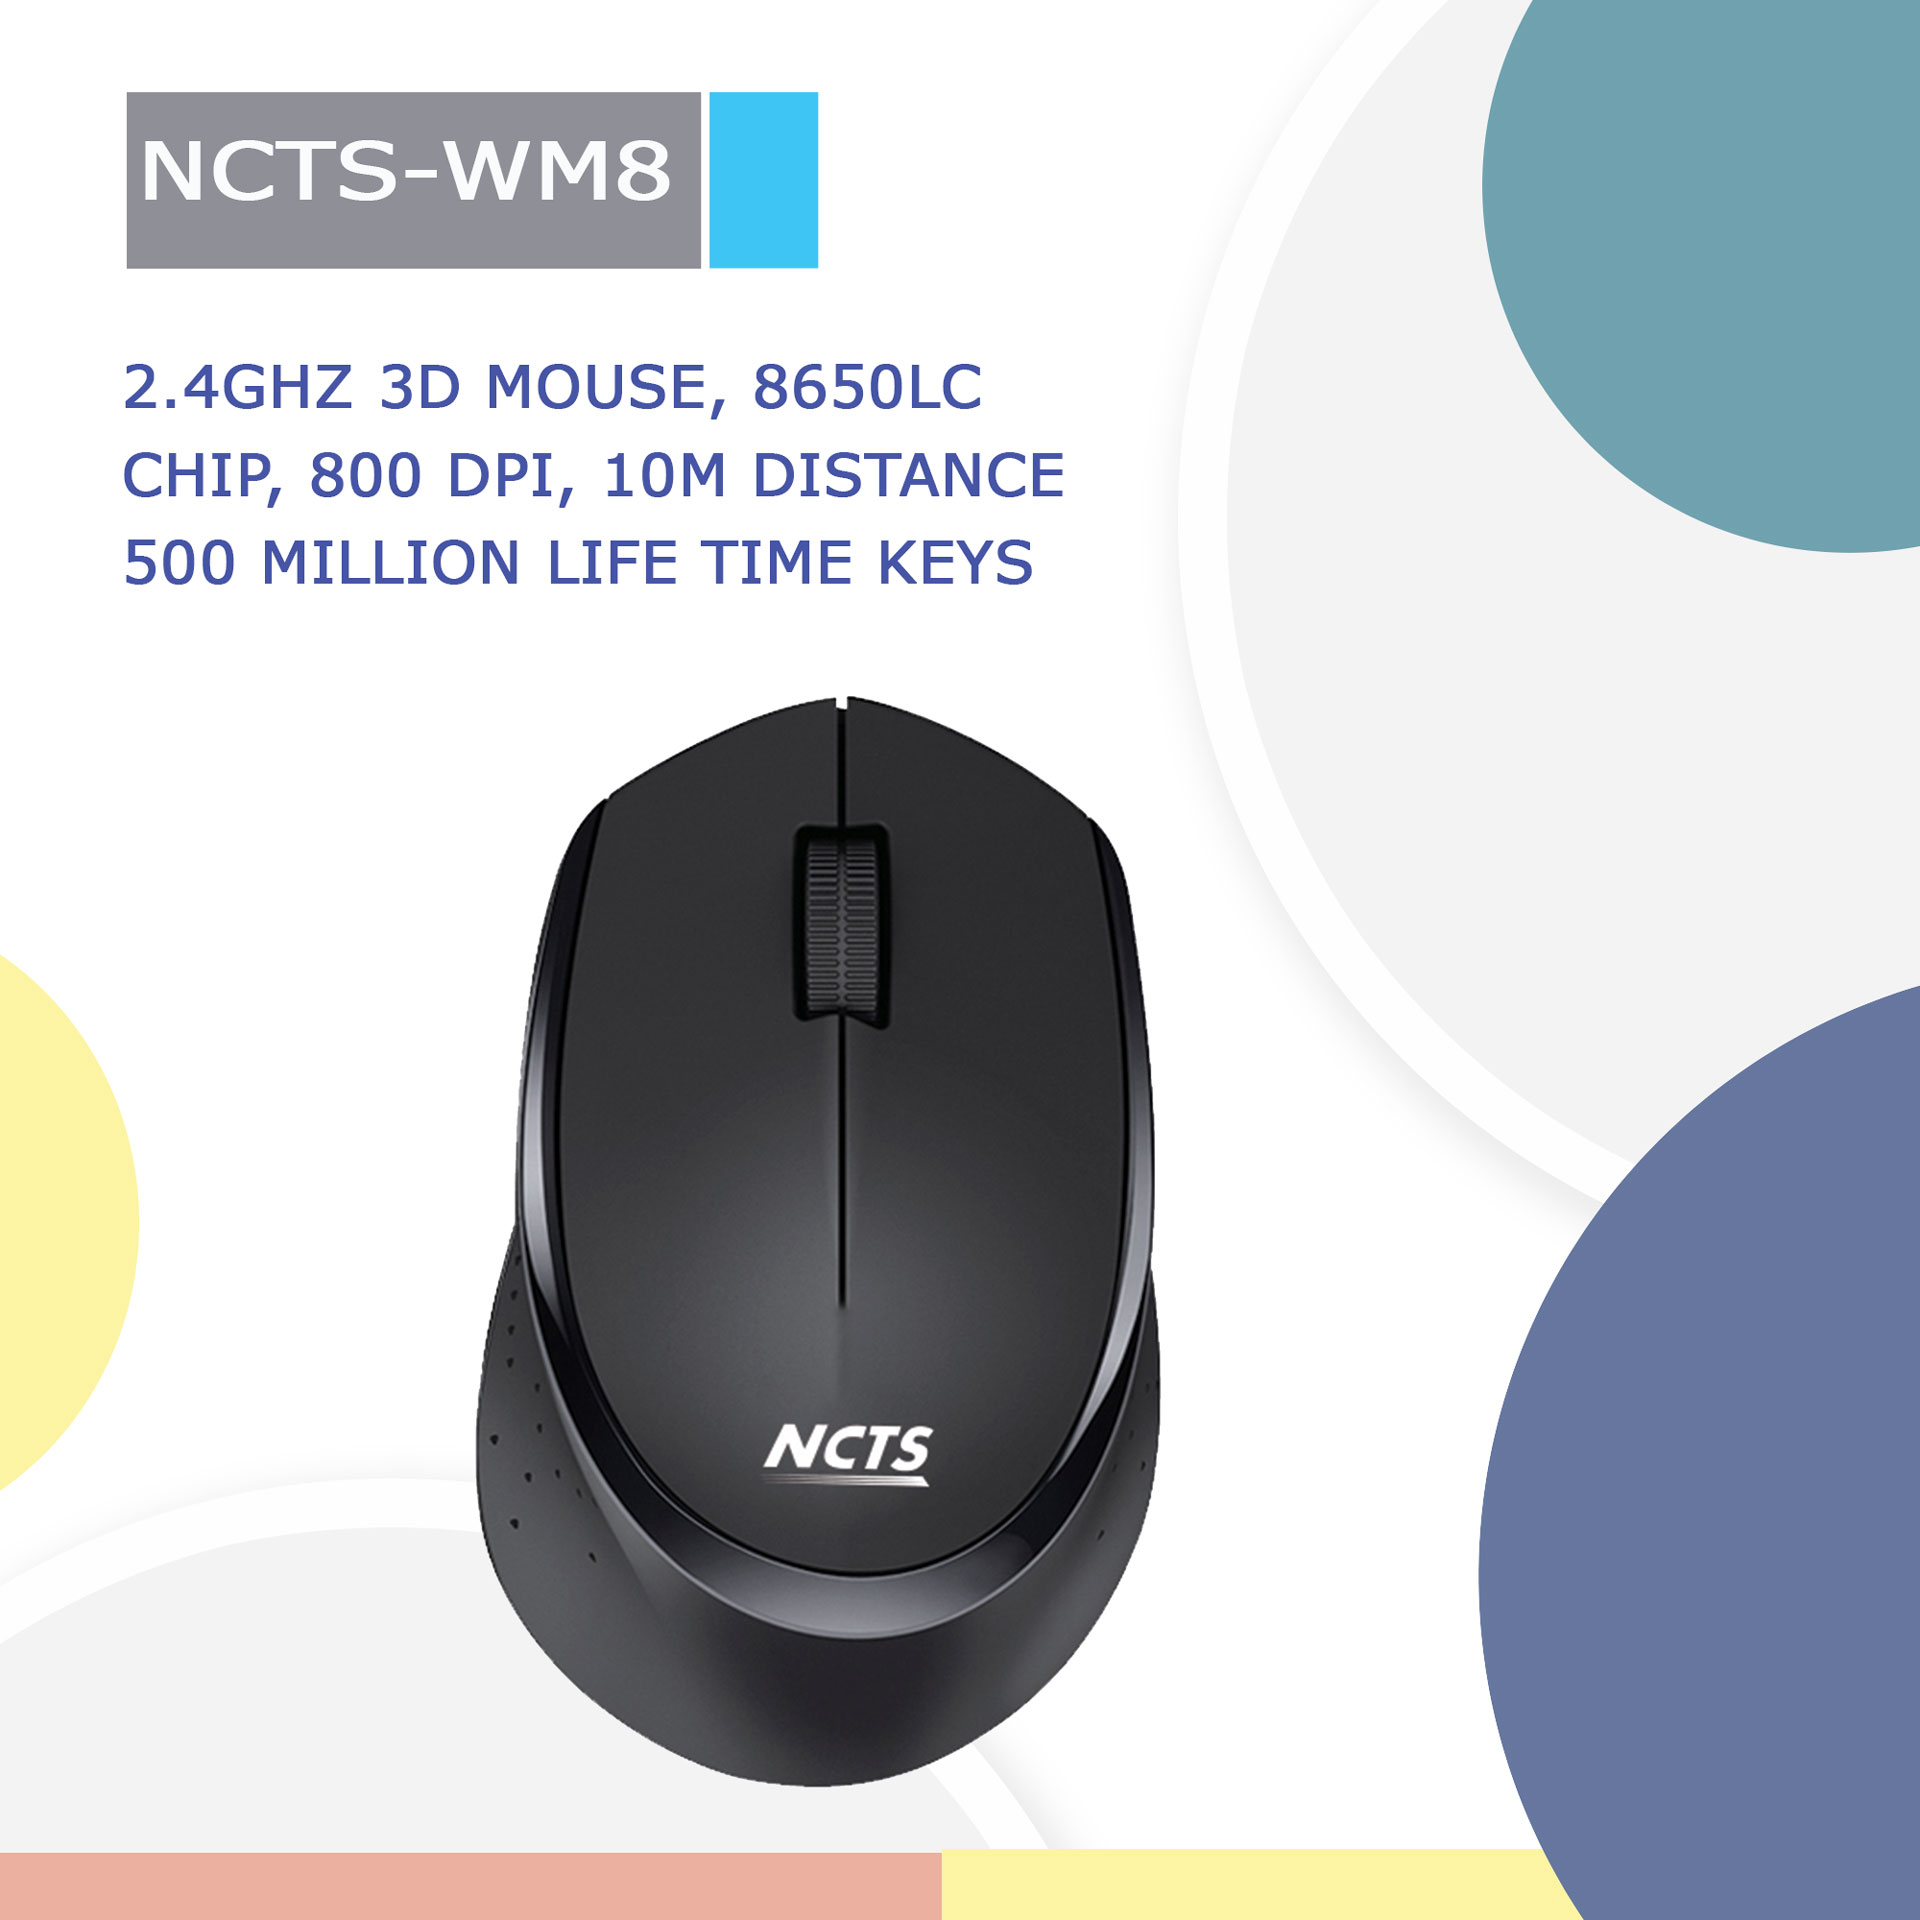 NCTS-WM8